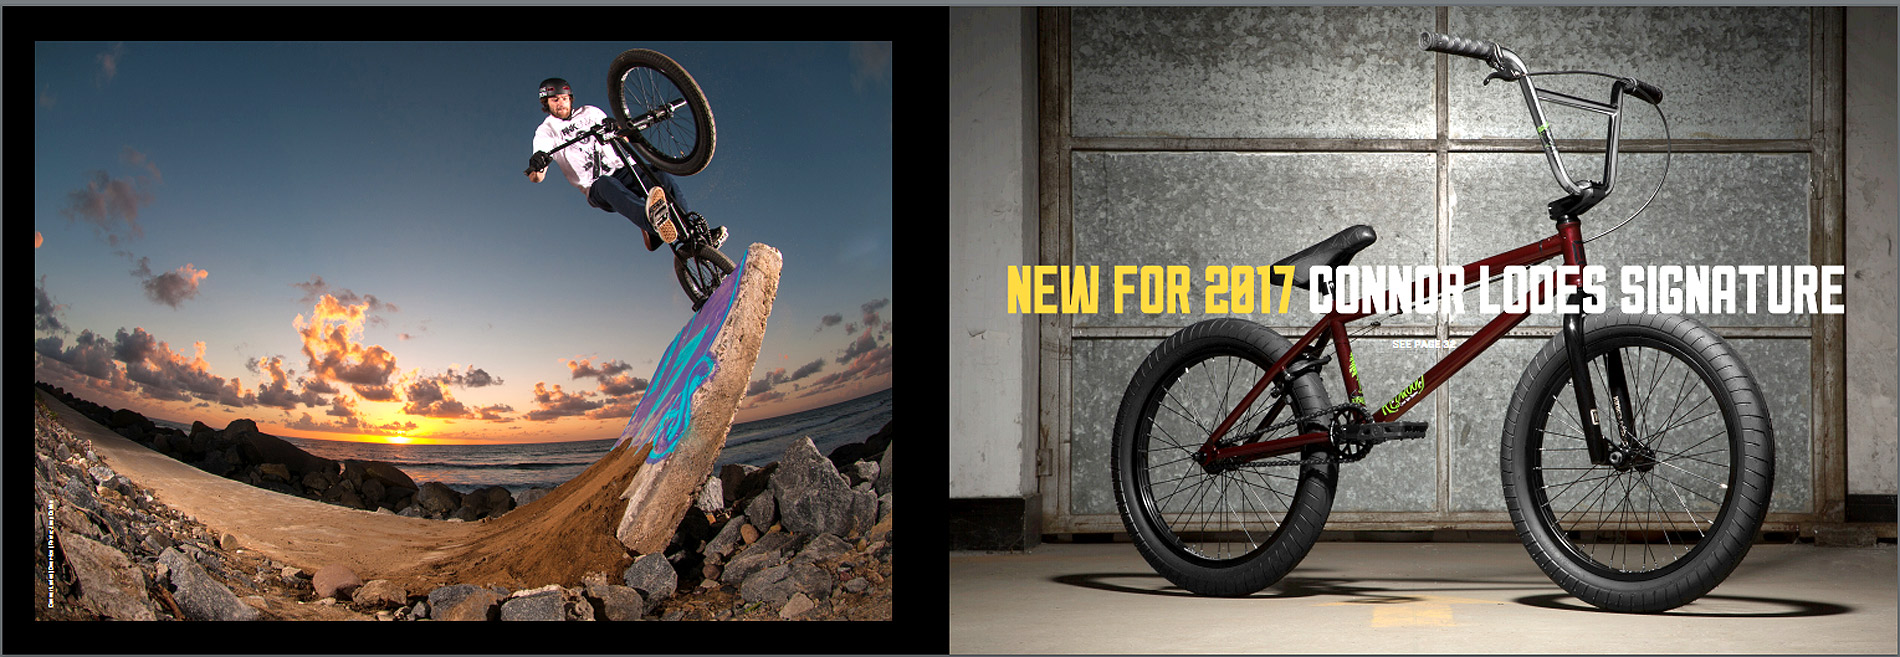 Check out the 2017 Kink BMX Bikes at Albe's BMX